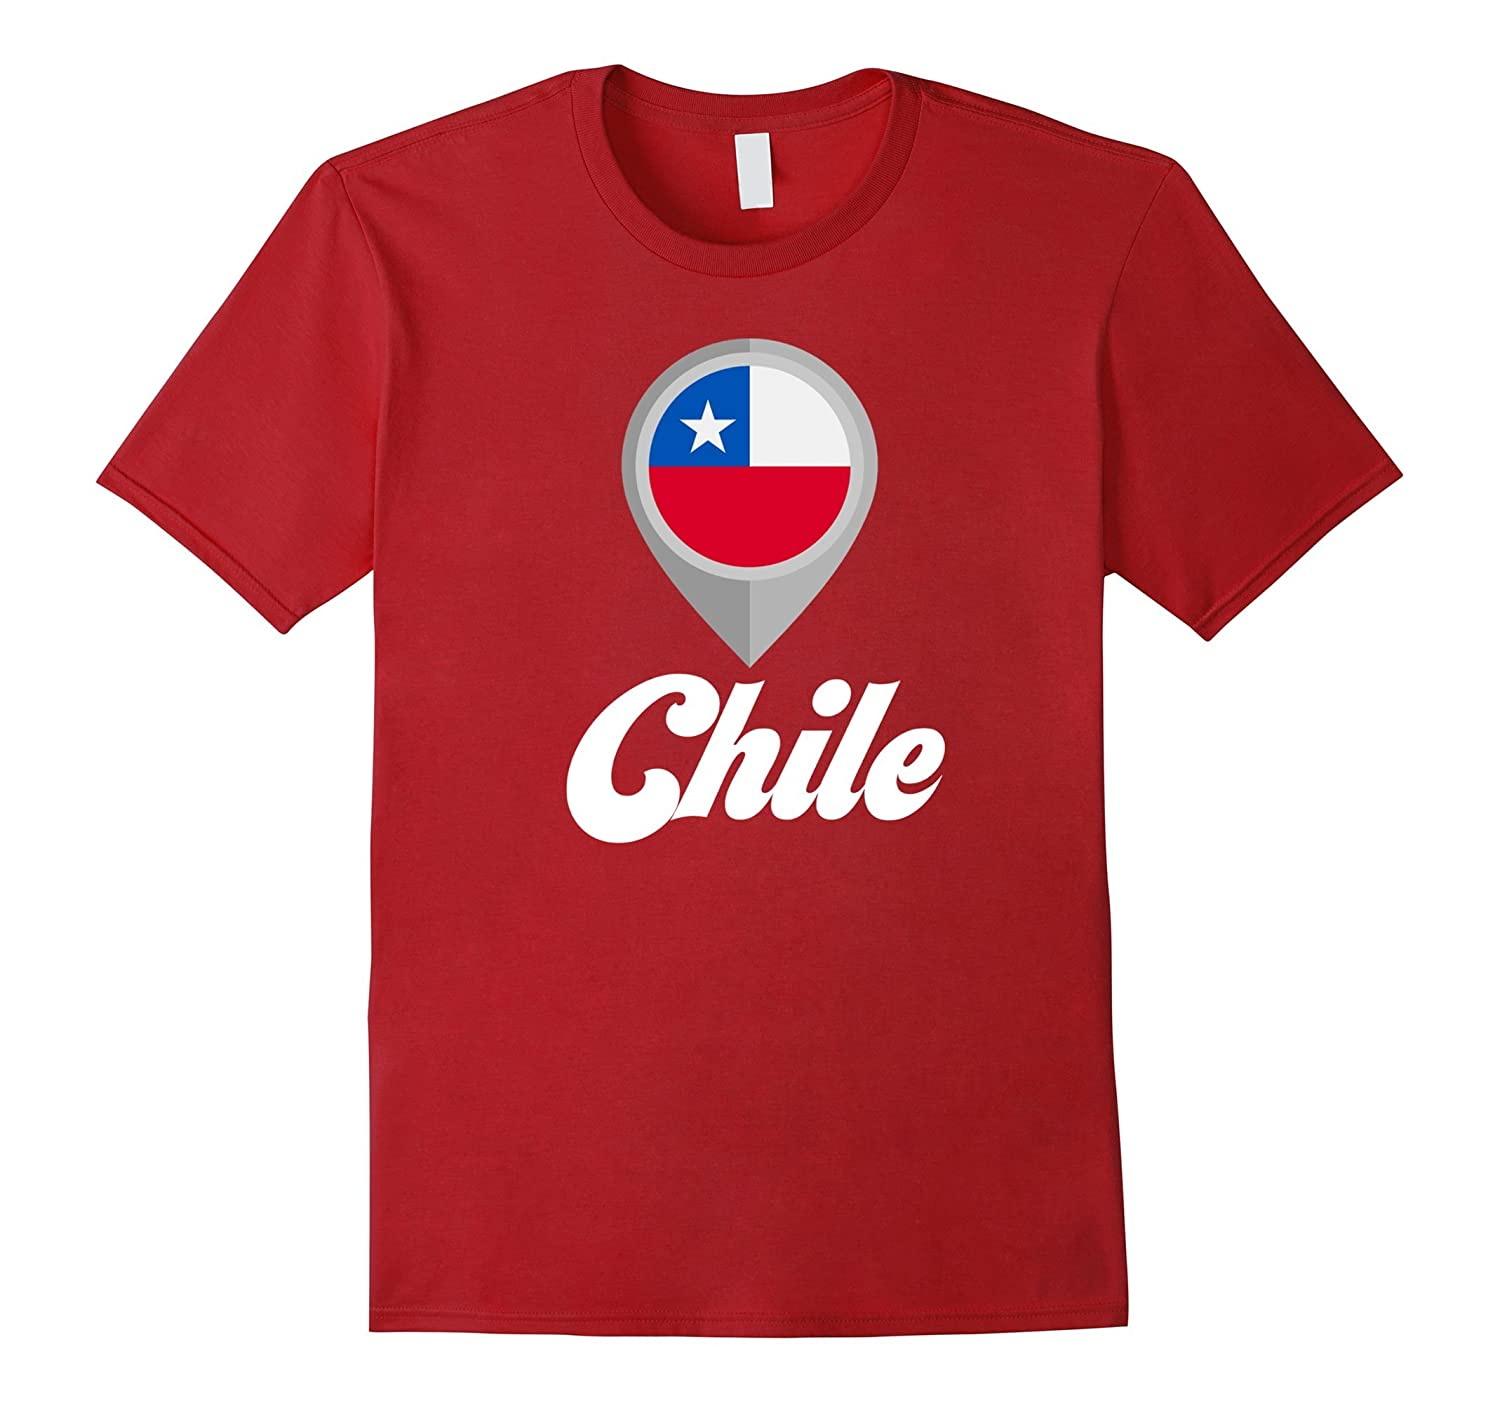 Chile T-shirt Chile Flag Tee I Love Chile Travel Shirt-Vaci